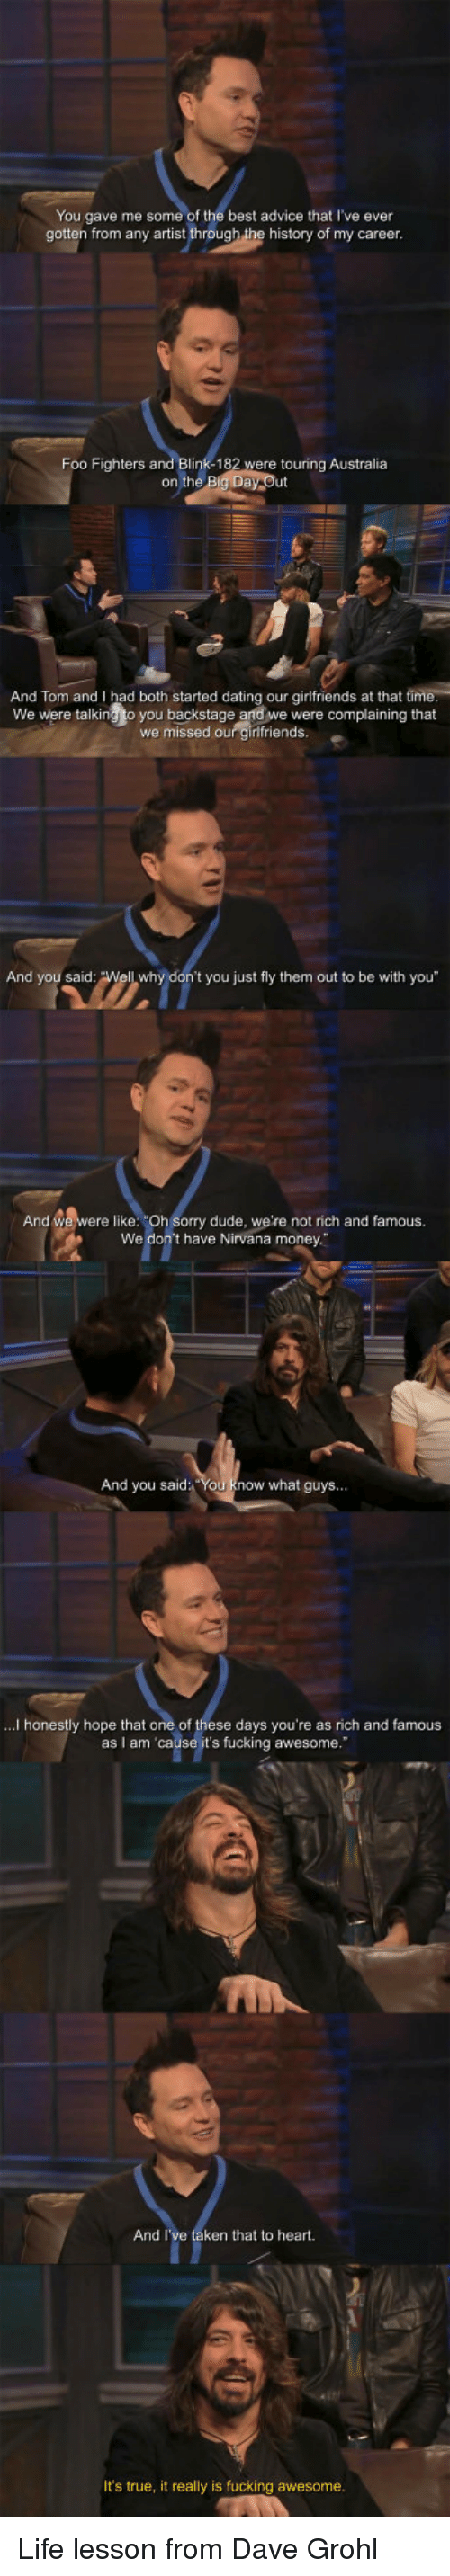 "Advice, Dating, and Dave Grohl: You gave me some of the best advice that I've ever  gotten from any artist through the history of my career  Foo Fighters and Blink-182  were touring Australia  on the  And Tom and I had both started dating our girlfriends at that ti  We were talking to you backstage and we were complaining that  we missed our girlfriends  And you said  t you just fly them out to be with you""  And we were like: ""Oh Sorry dude, we're not rich and famous.  We don't have Nirvana money  And you said You know what guys...  ...I honestly hope that one of these days you're as rich and famous  as I am 'cause it's fucking awesome.""  And I  ken that to heart.  It's true, it really is fucking awesome Life lesson from Dave Grohl"